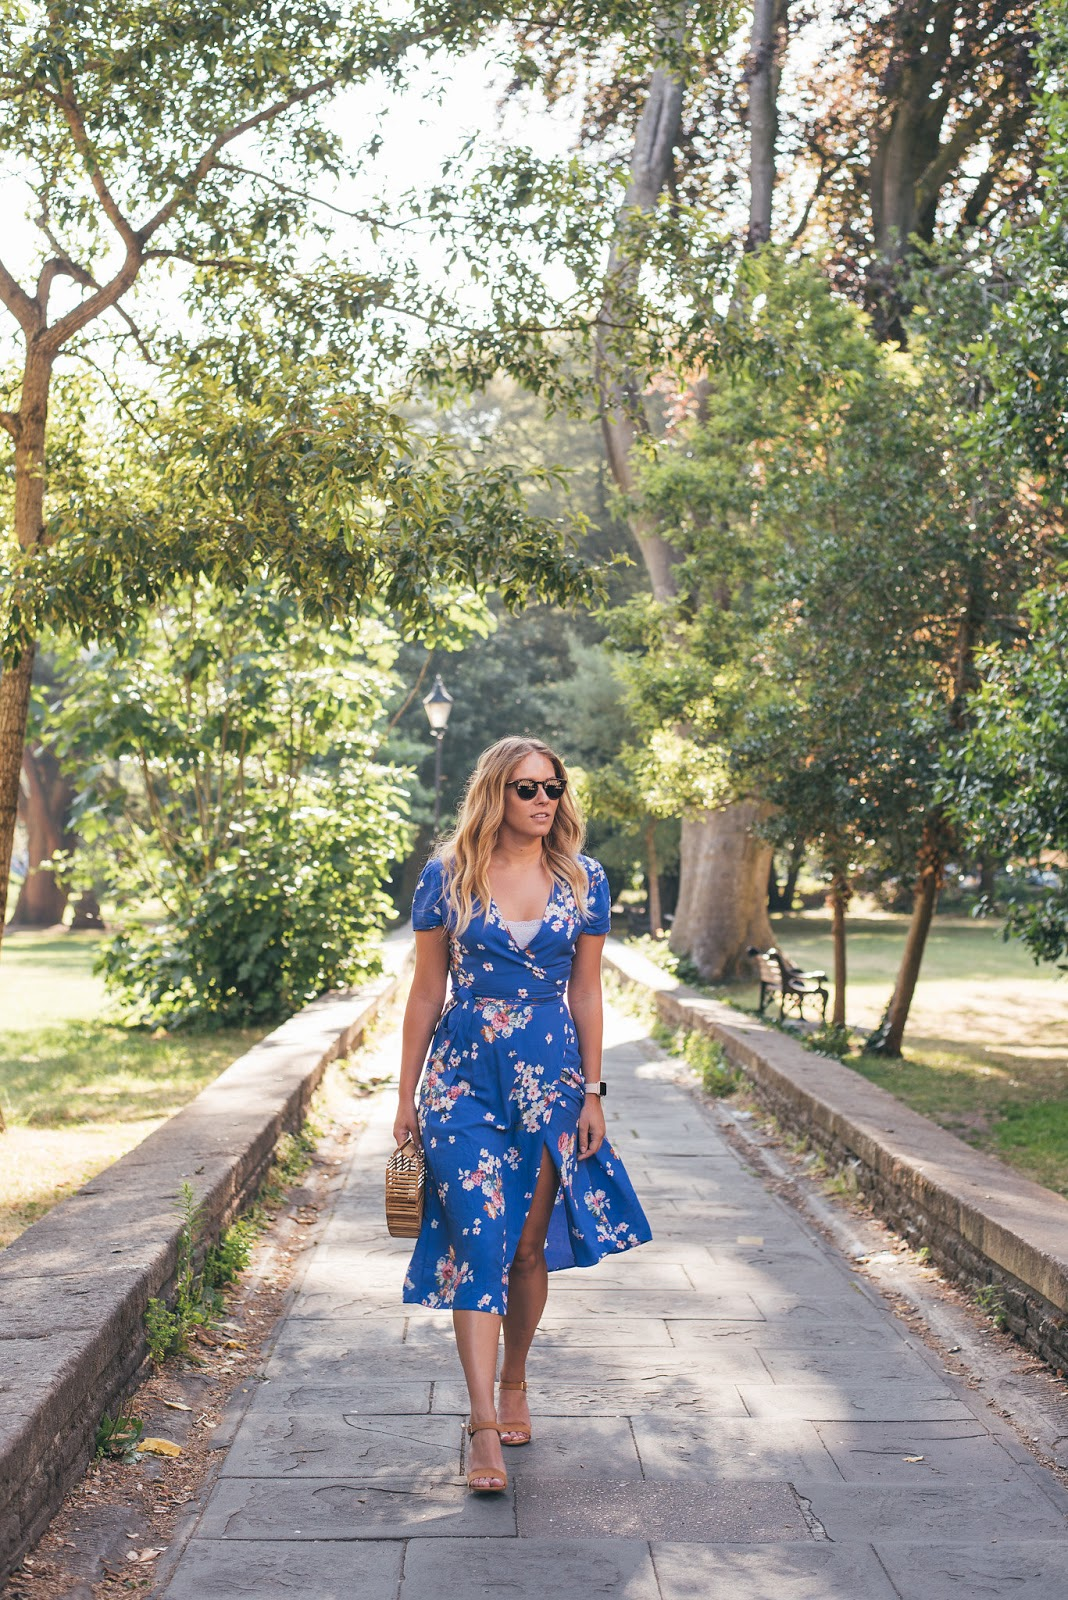 Primark Blue Floral Wrap Midi Dress with Cult Gaia Dupe Bamboo Bag from PrettyLittleThing